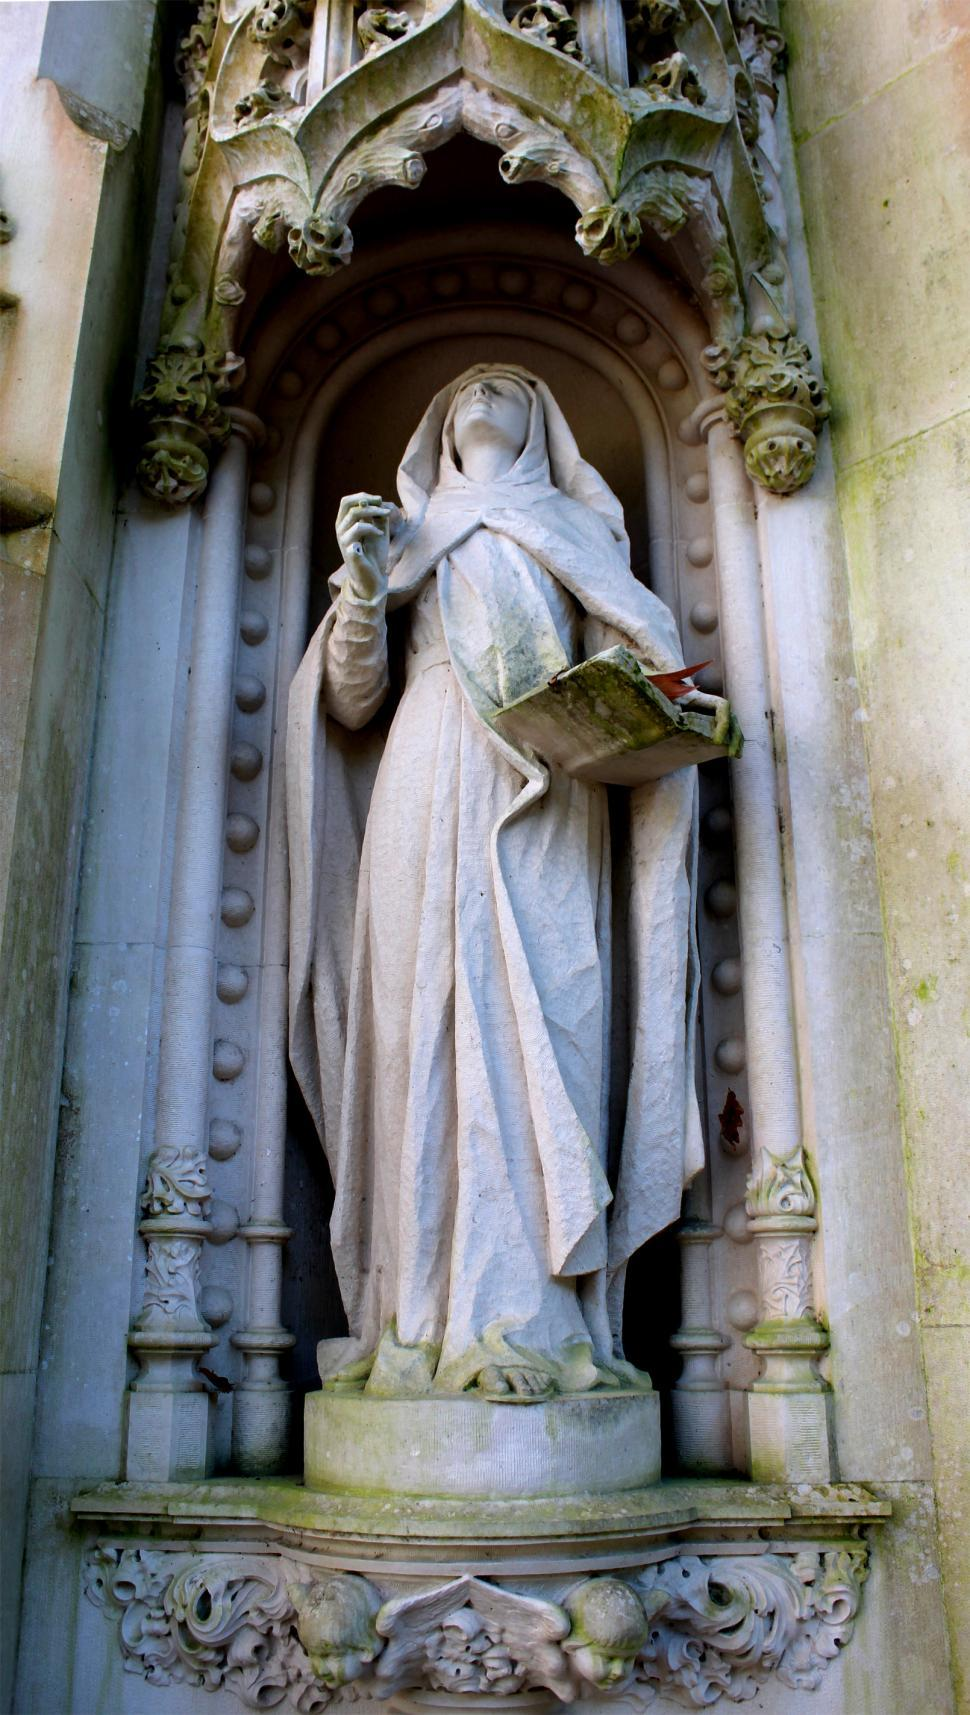 Download Free Stock HD Photo of Statue of Virgin Mary in Sintra, Portugal Online